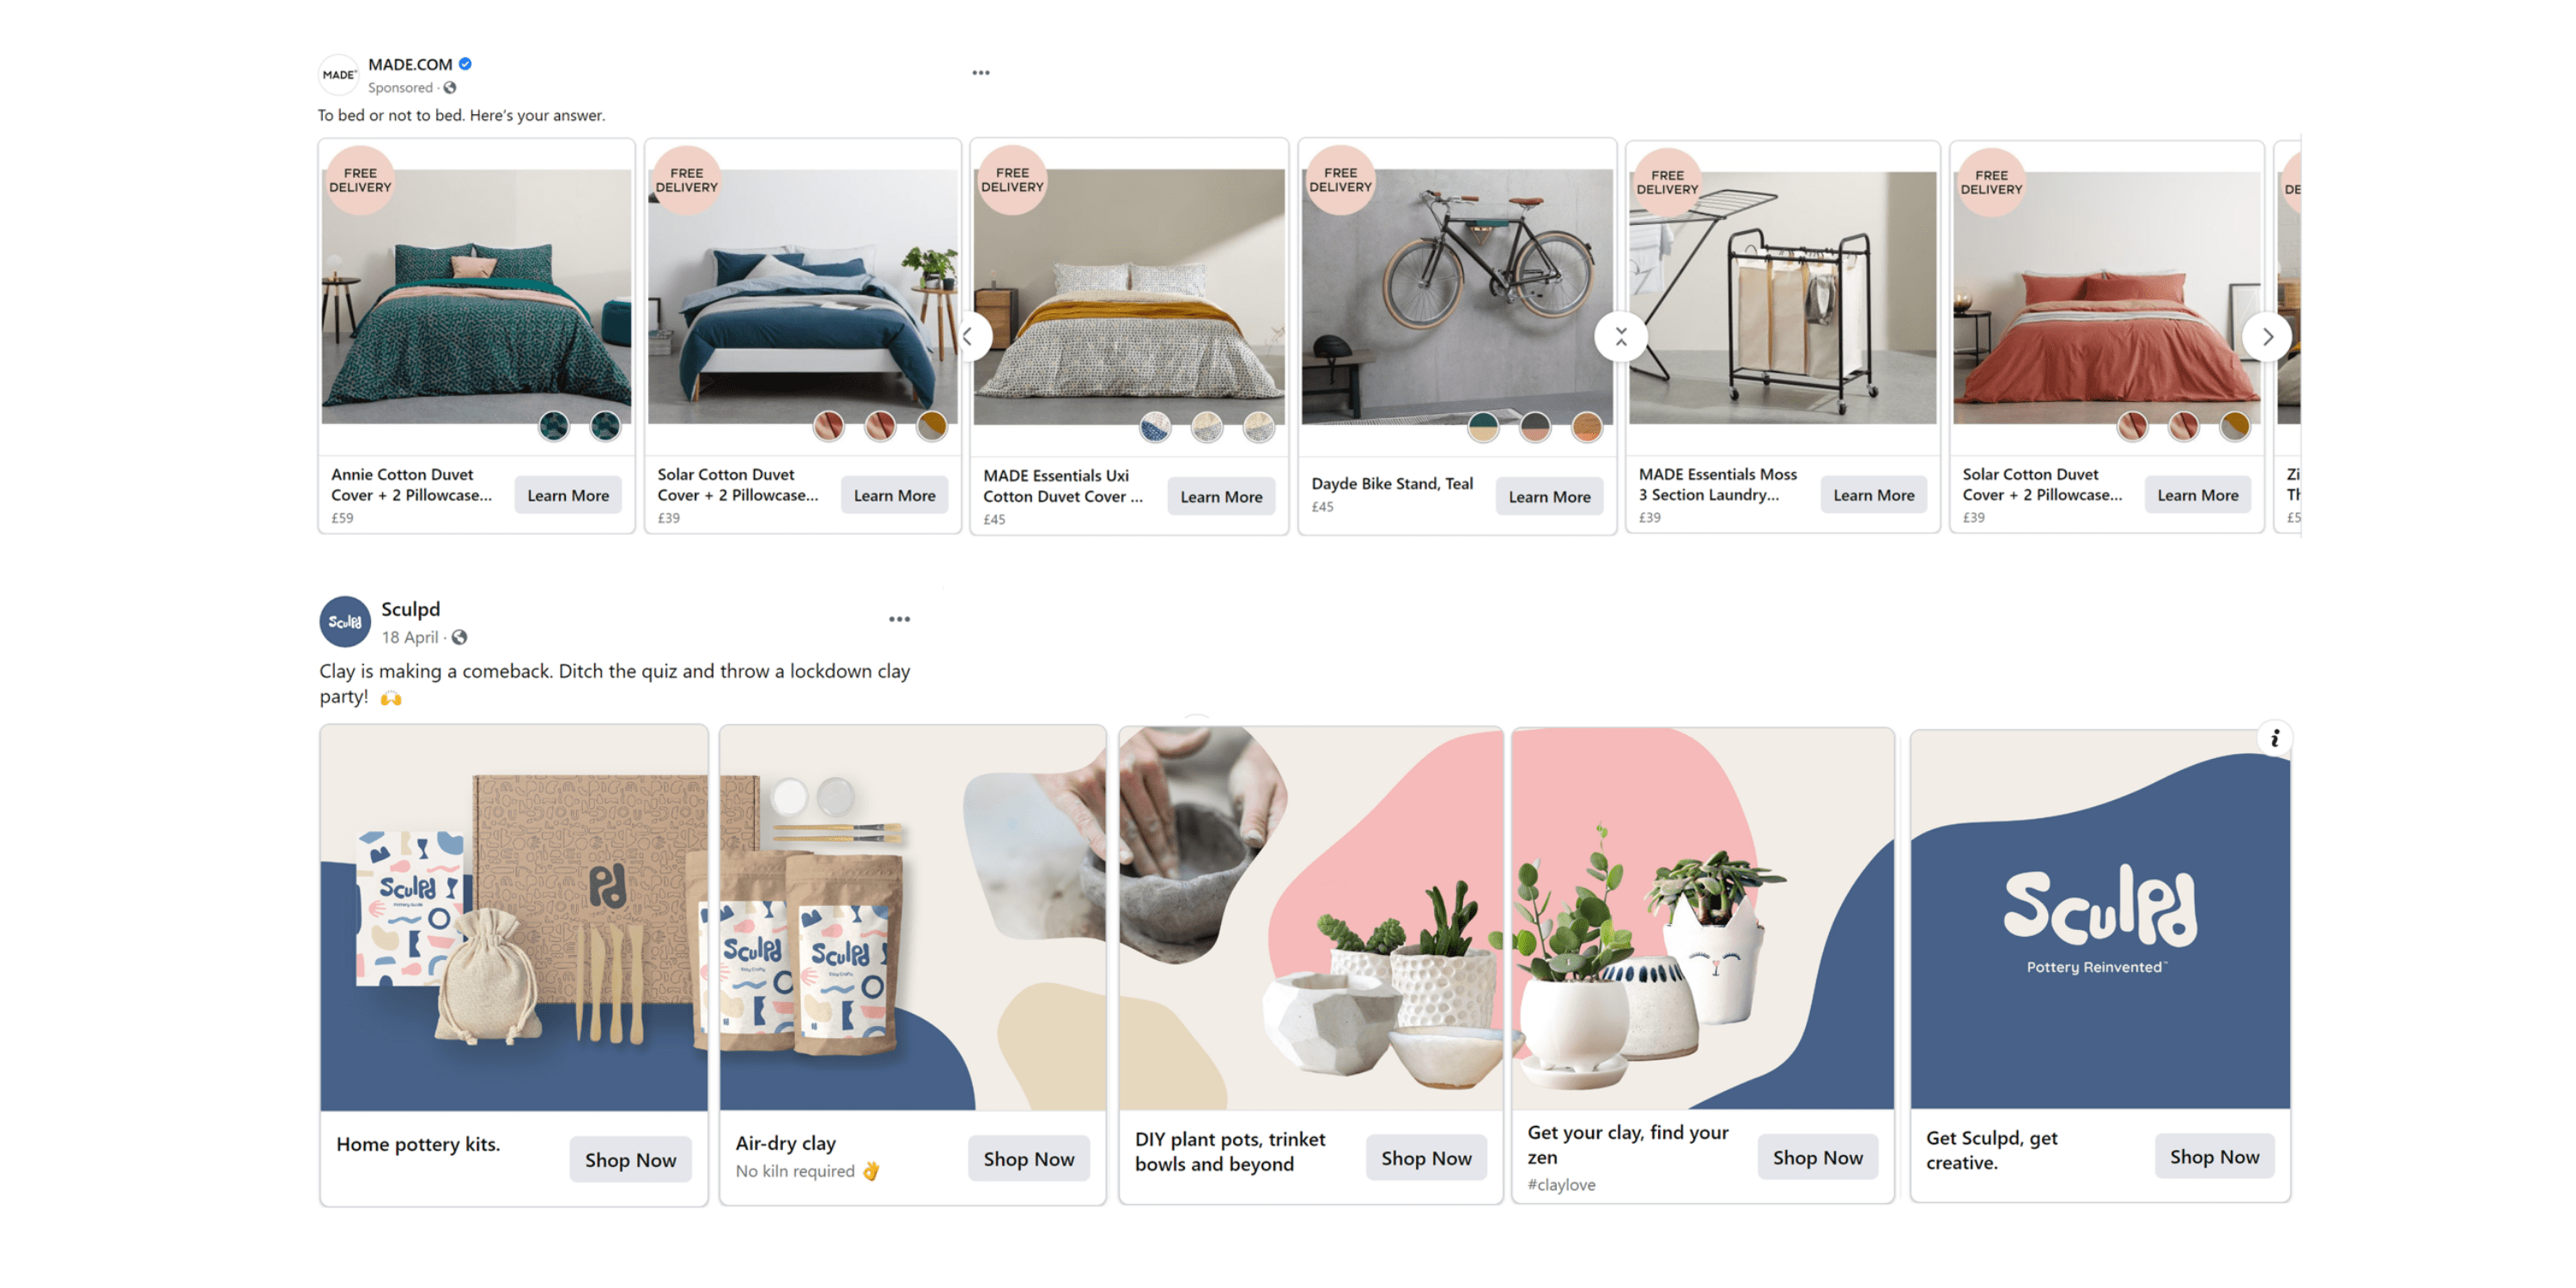 Social ecommerce carousel example image